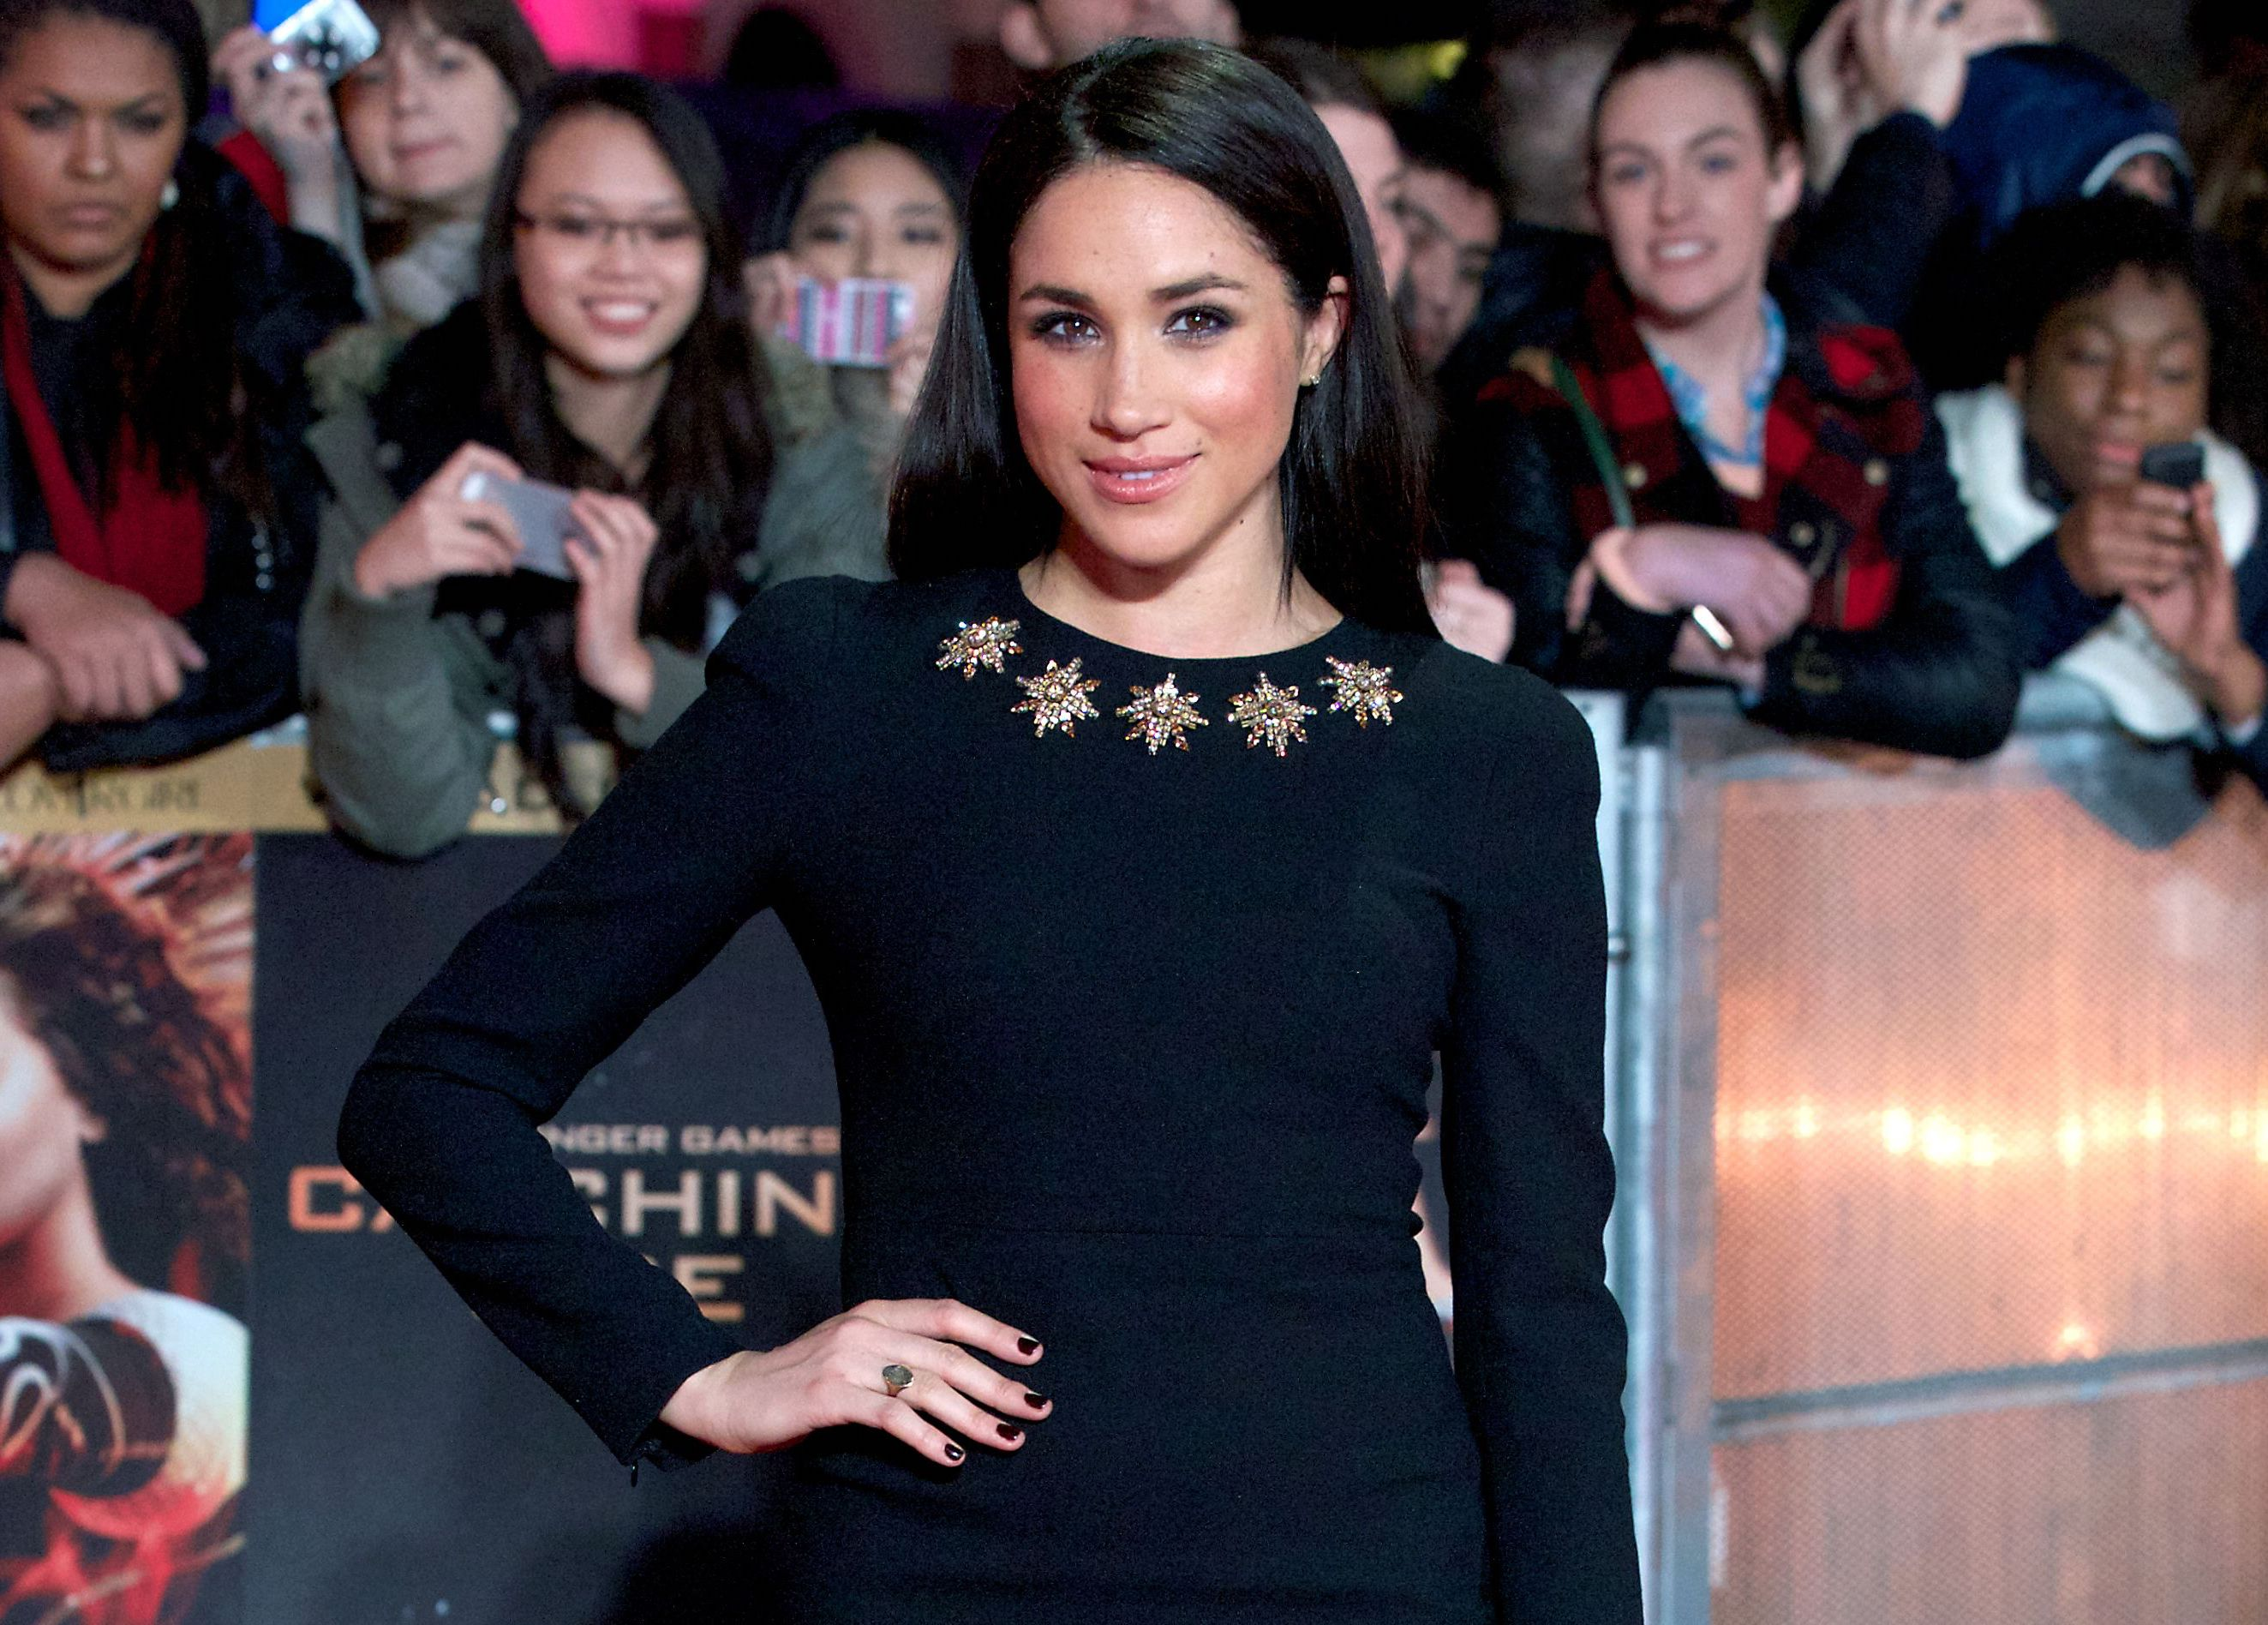 """Meghan Markle at the premiere of """"The Hunger Games: Catching Fire"""""""